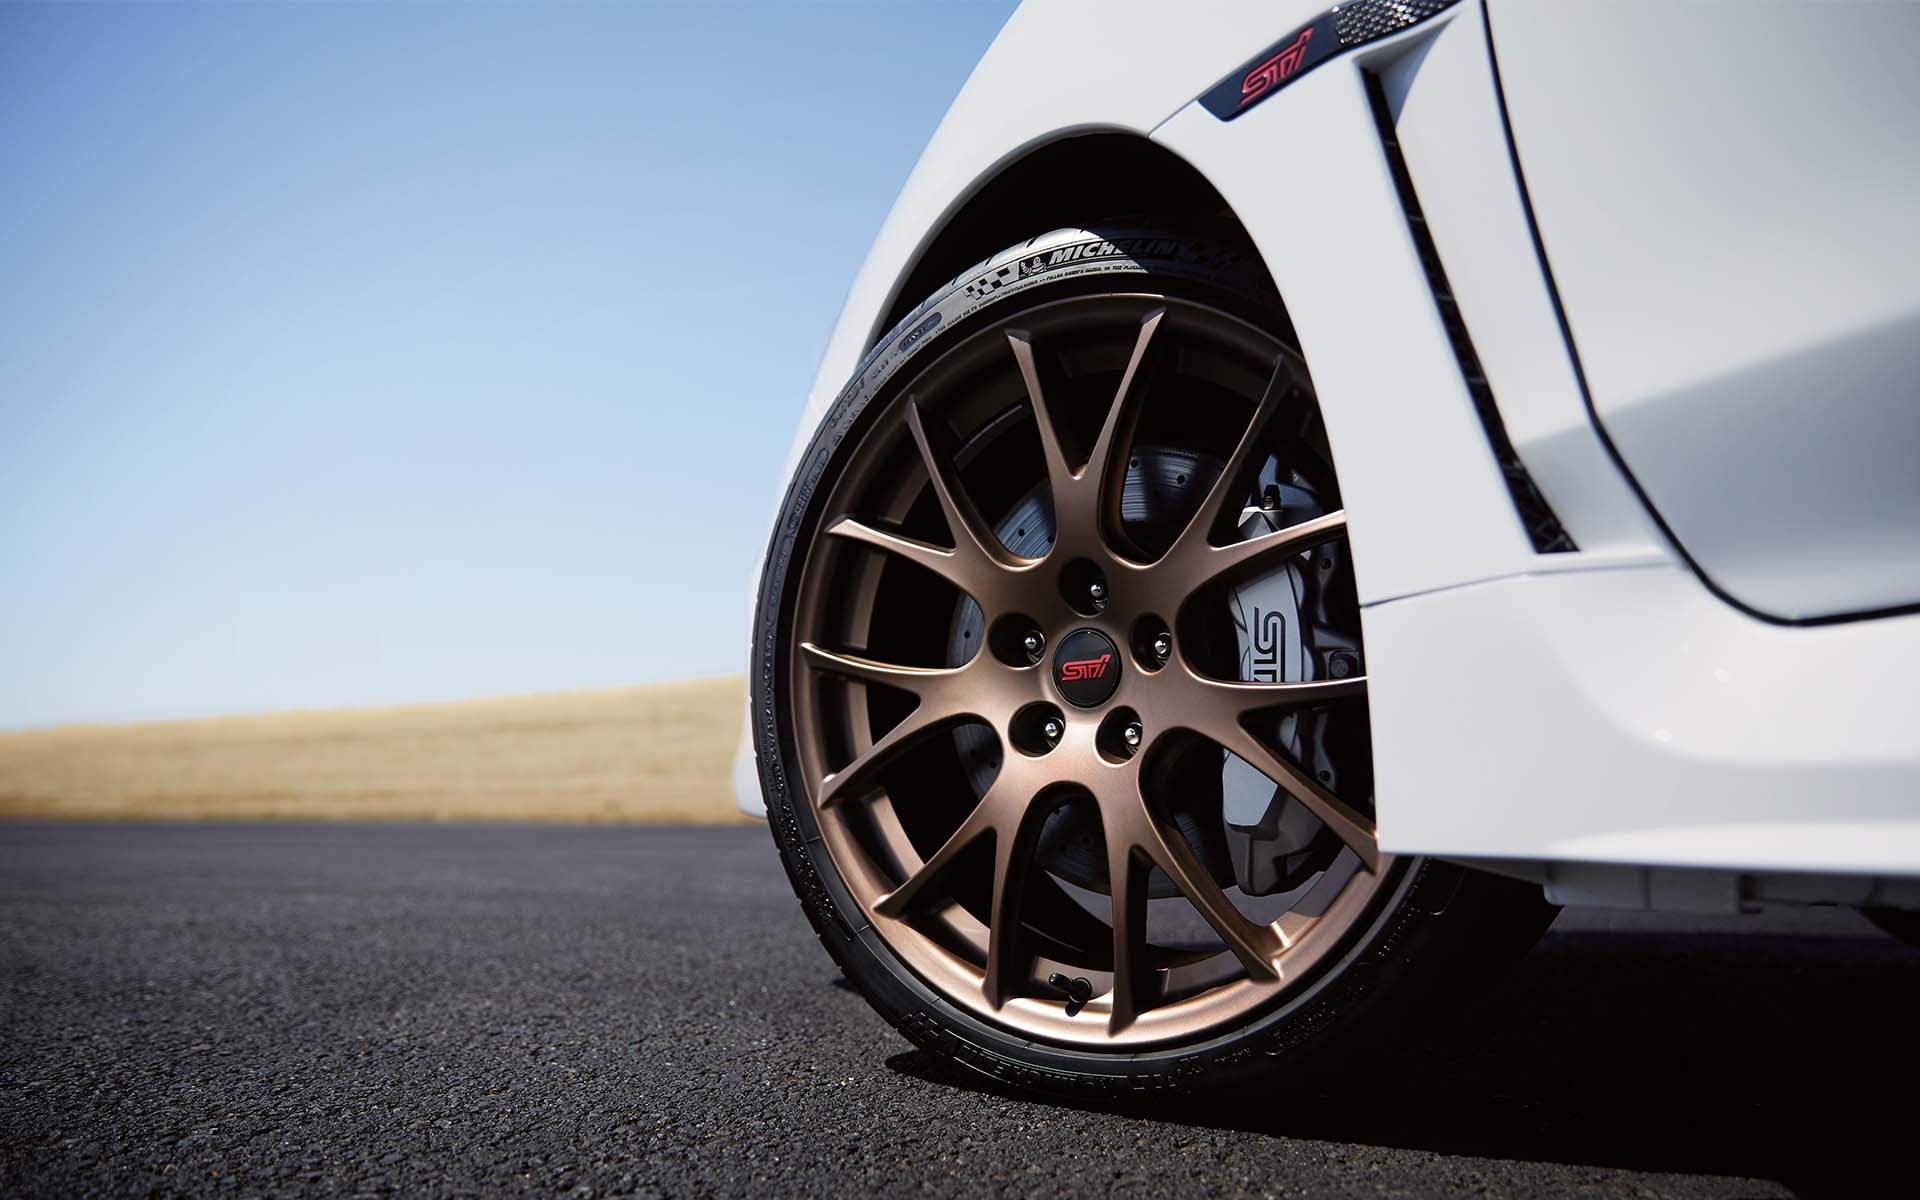 Close up view of Subaru WRX STI Series.White wheel